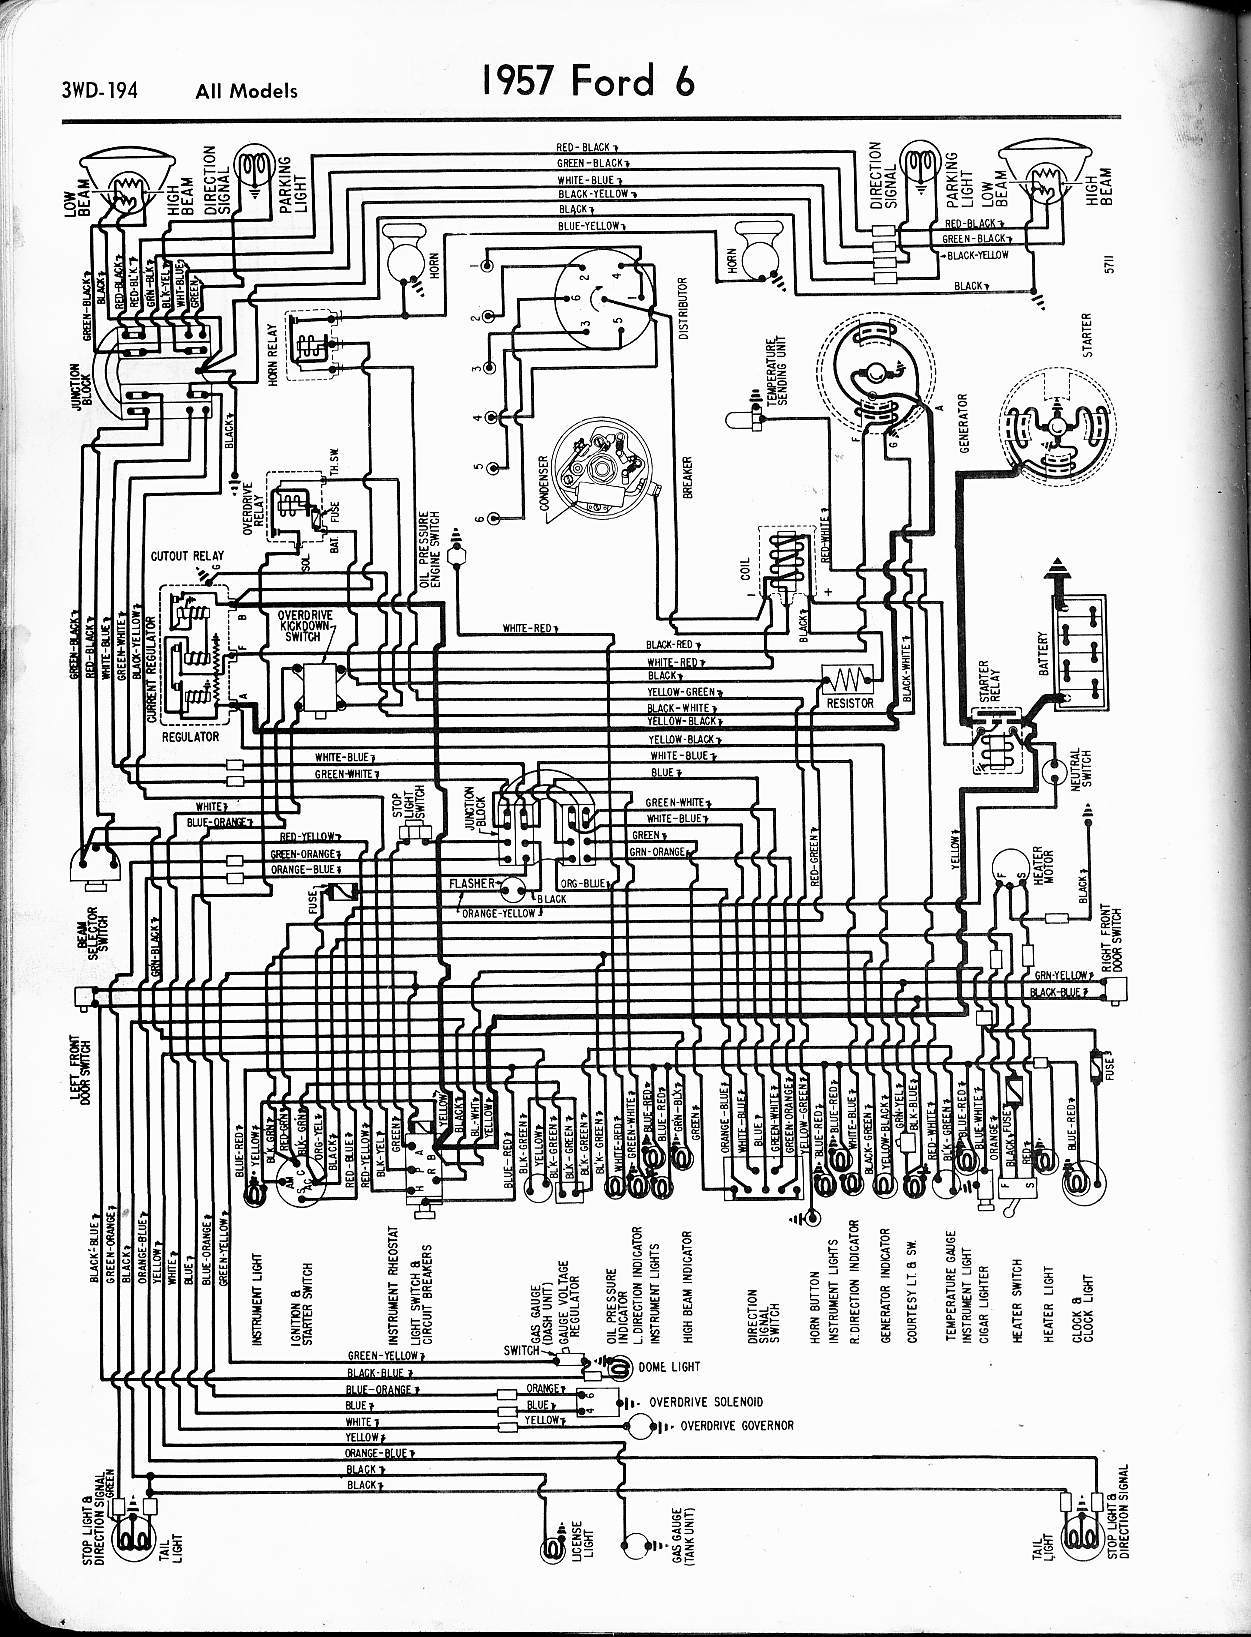 80 2010_07_23_013626_1957_ford_wiring_451fe1d3aafe571893763e4bcbb92521b2870e9d 1957 ford truck wiring diagram ford truck enthusiasts forums ford wiring schematics at honlapkeszites.co